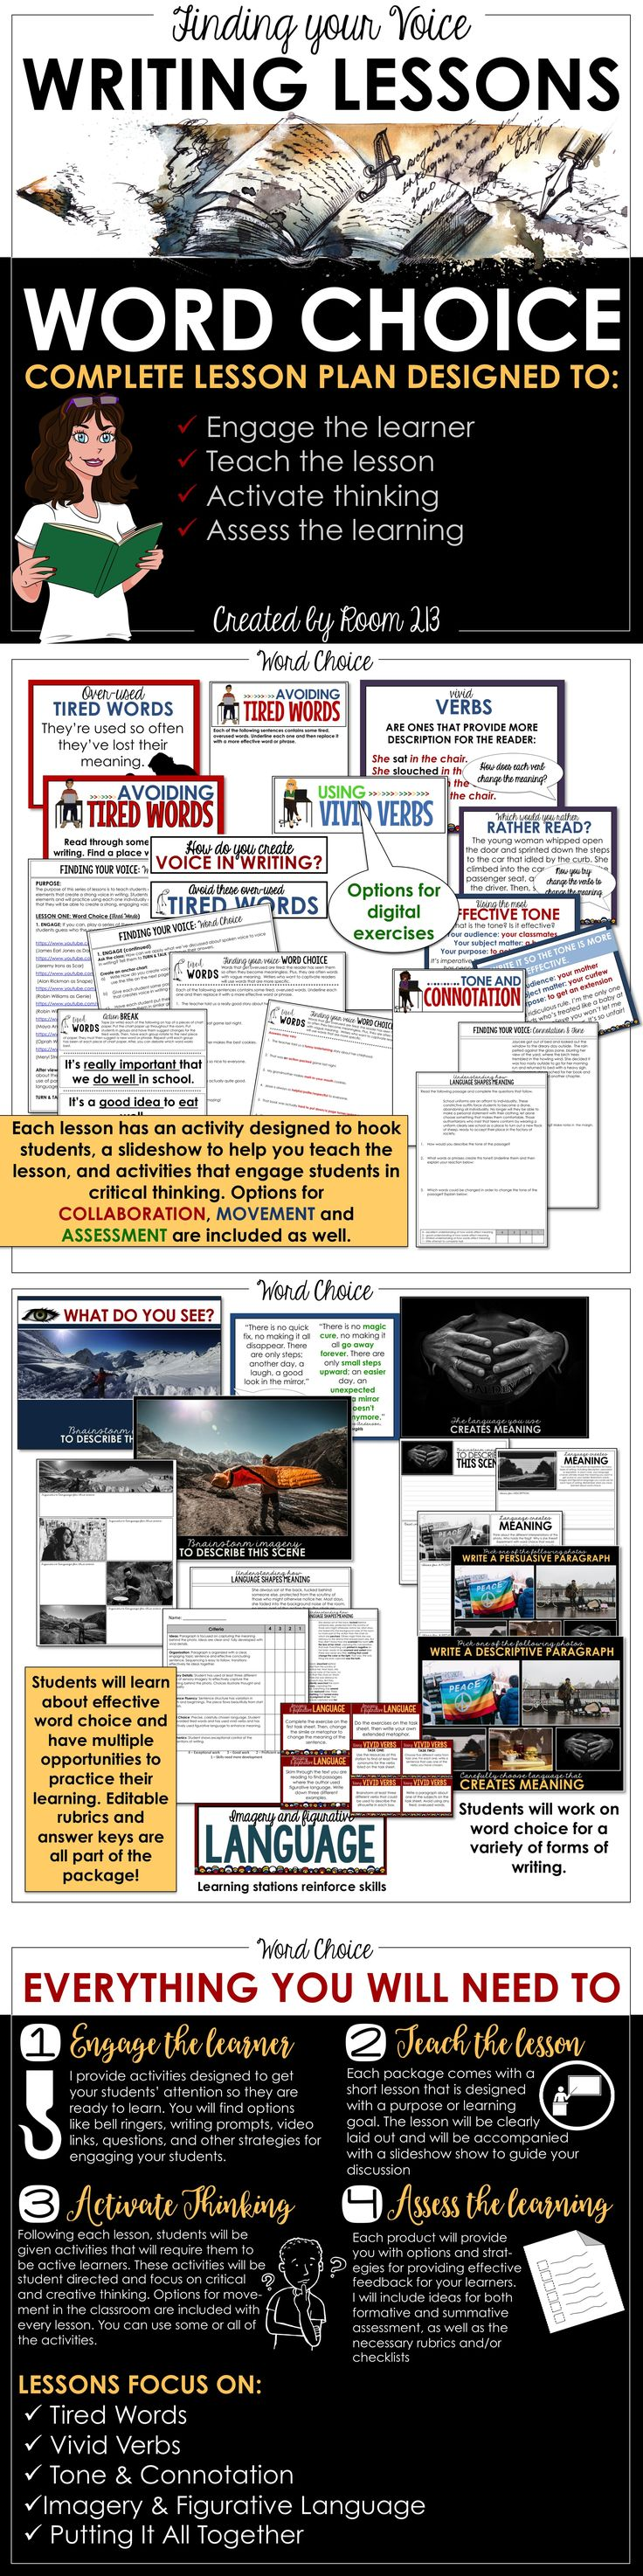 creative writing lesson plans for high school students Prepare yourself for the avalanche of lesson planning with these targeted tips even if you had plenty of practice writing lessons during your teacher training, it's hard to be prepared the answers will help you create high-quality, on-target plans at the beginning of the year, you'll probably refer to.